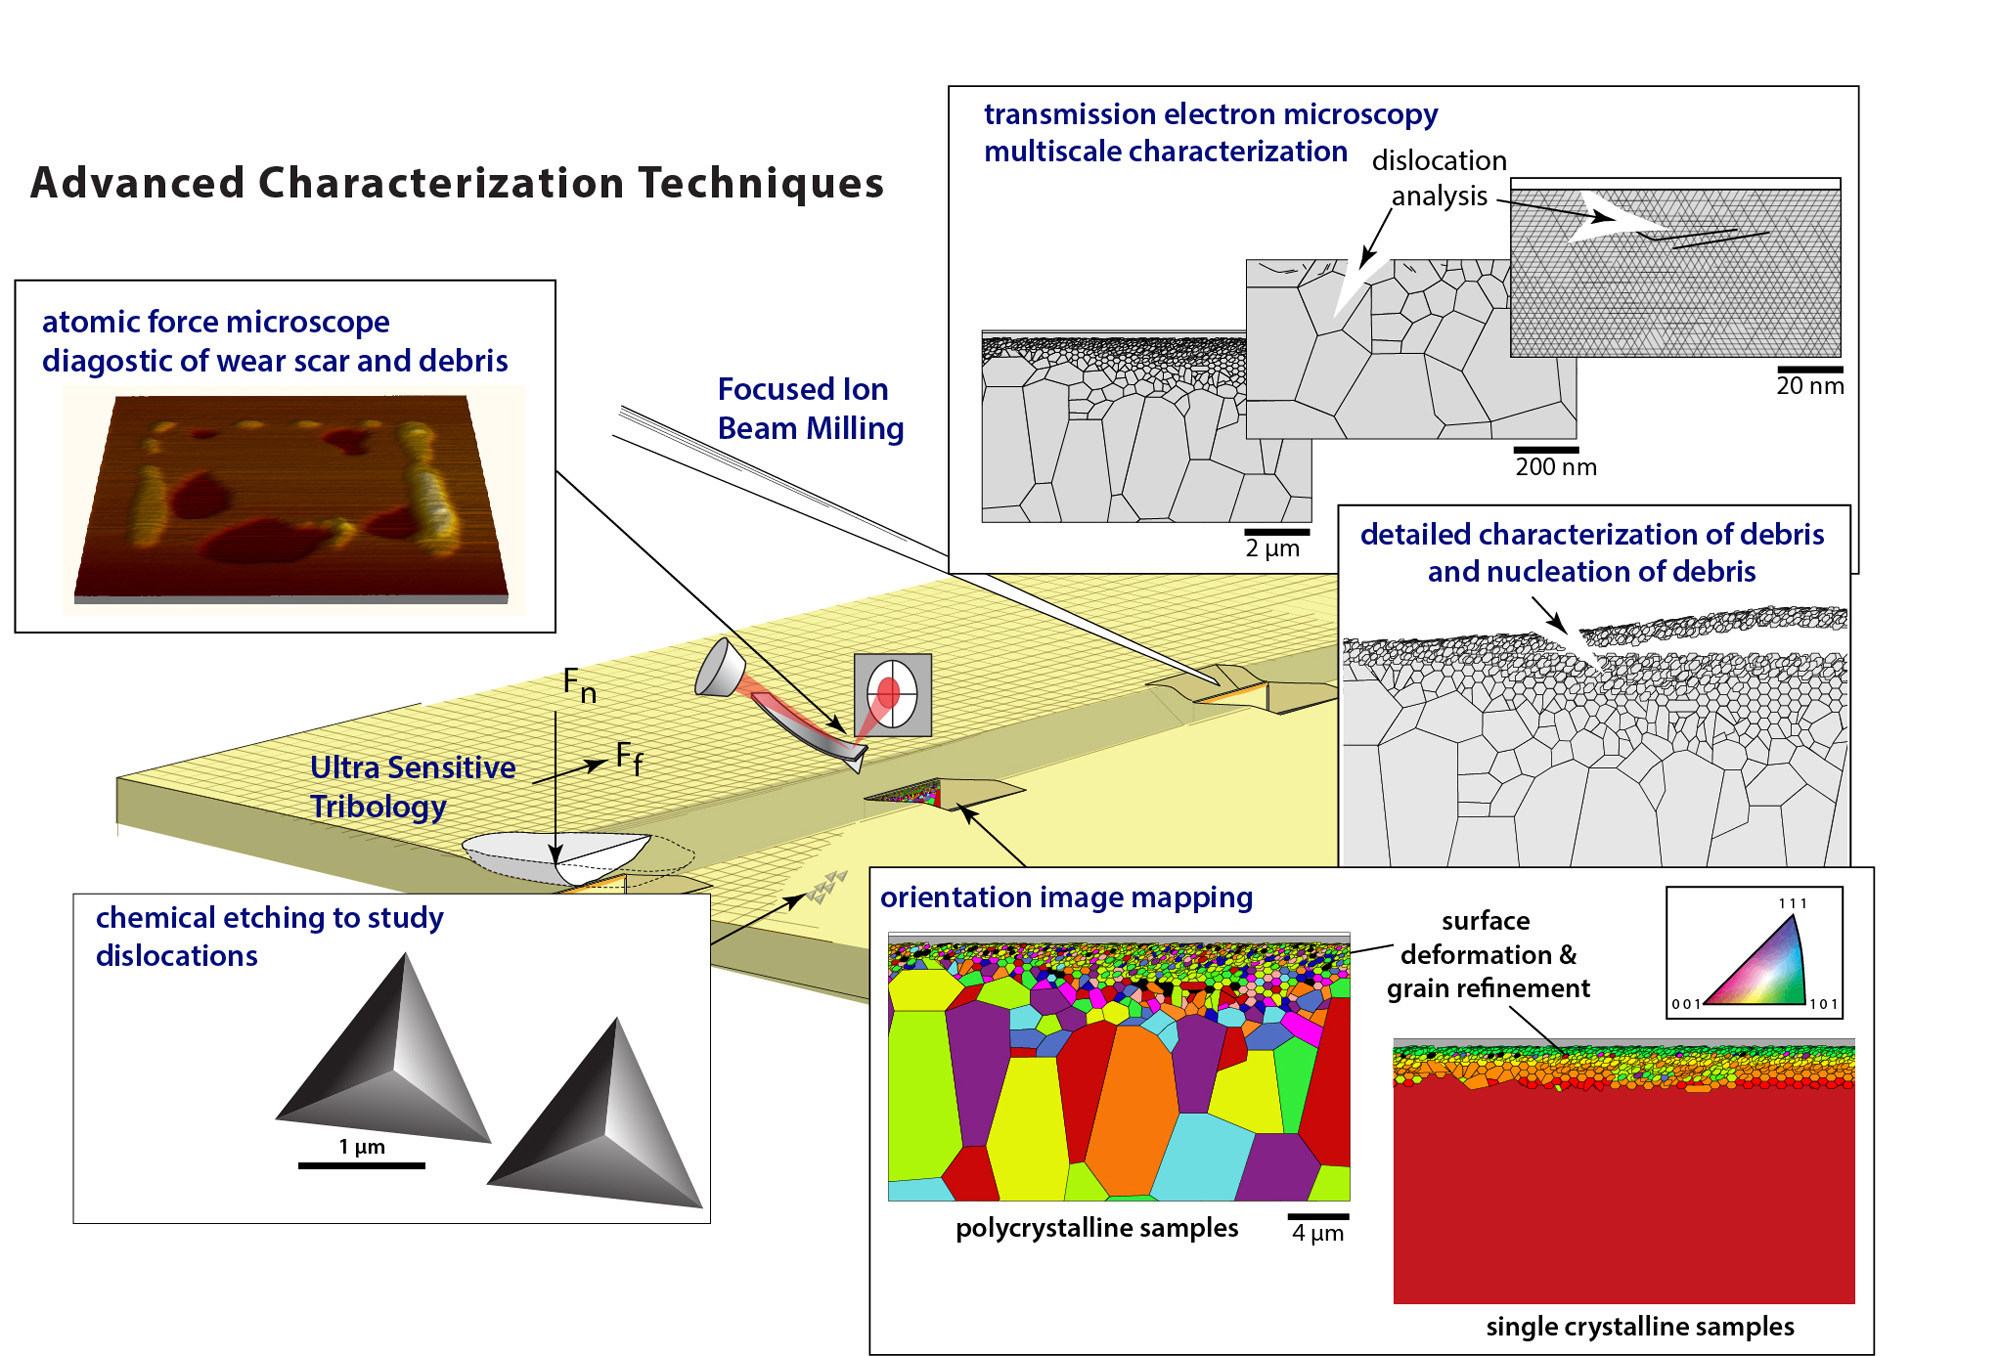 characterization of surface deformation with the